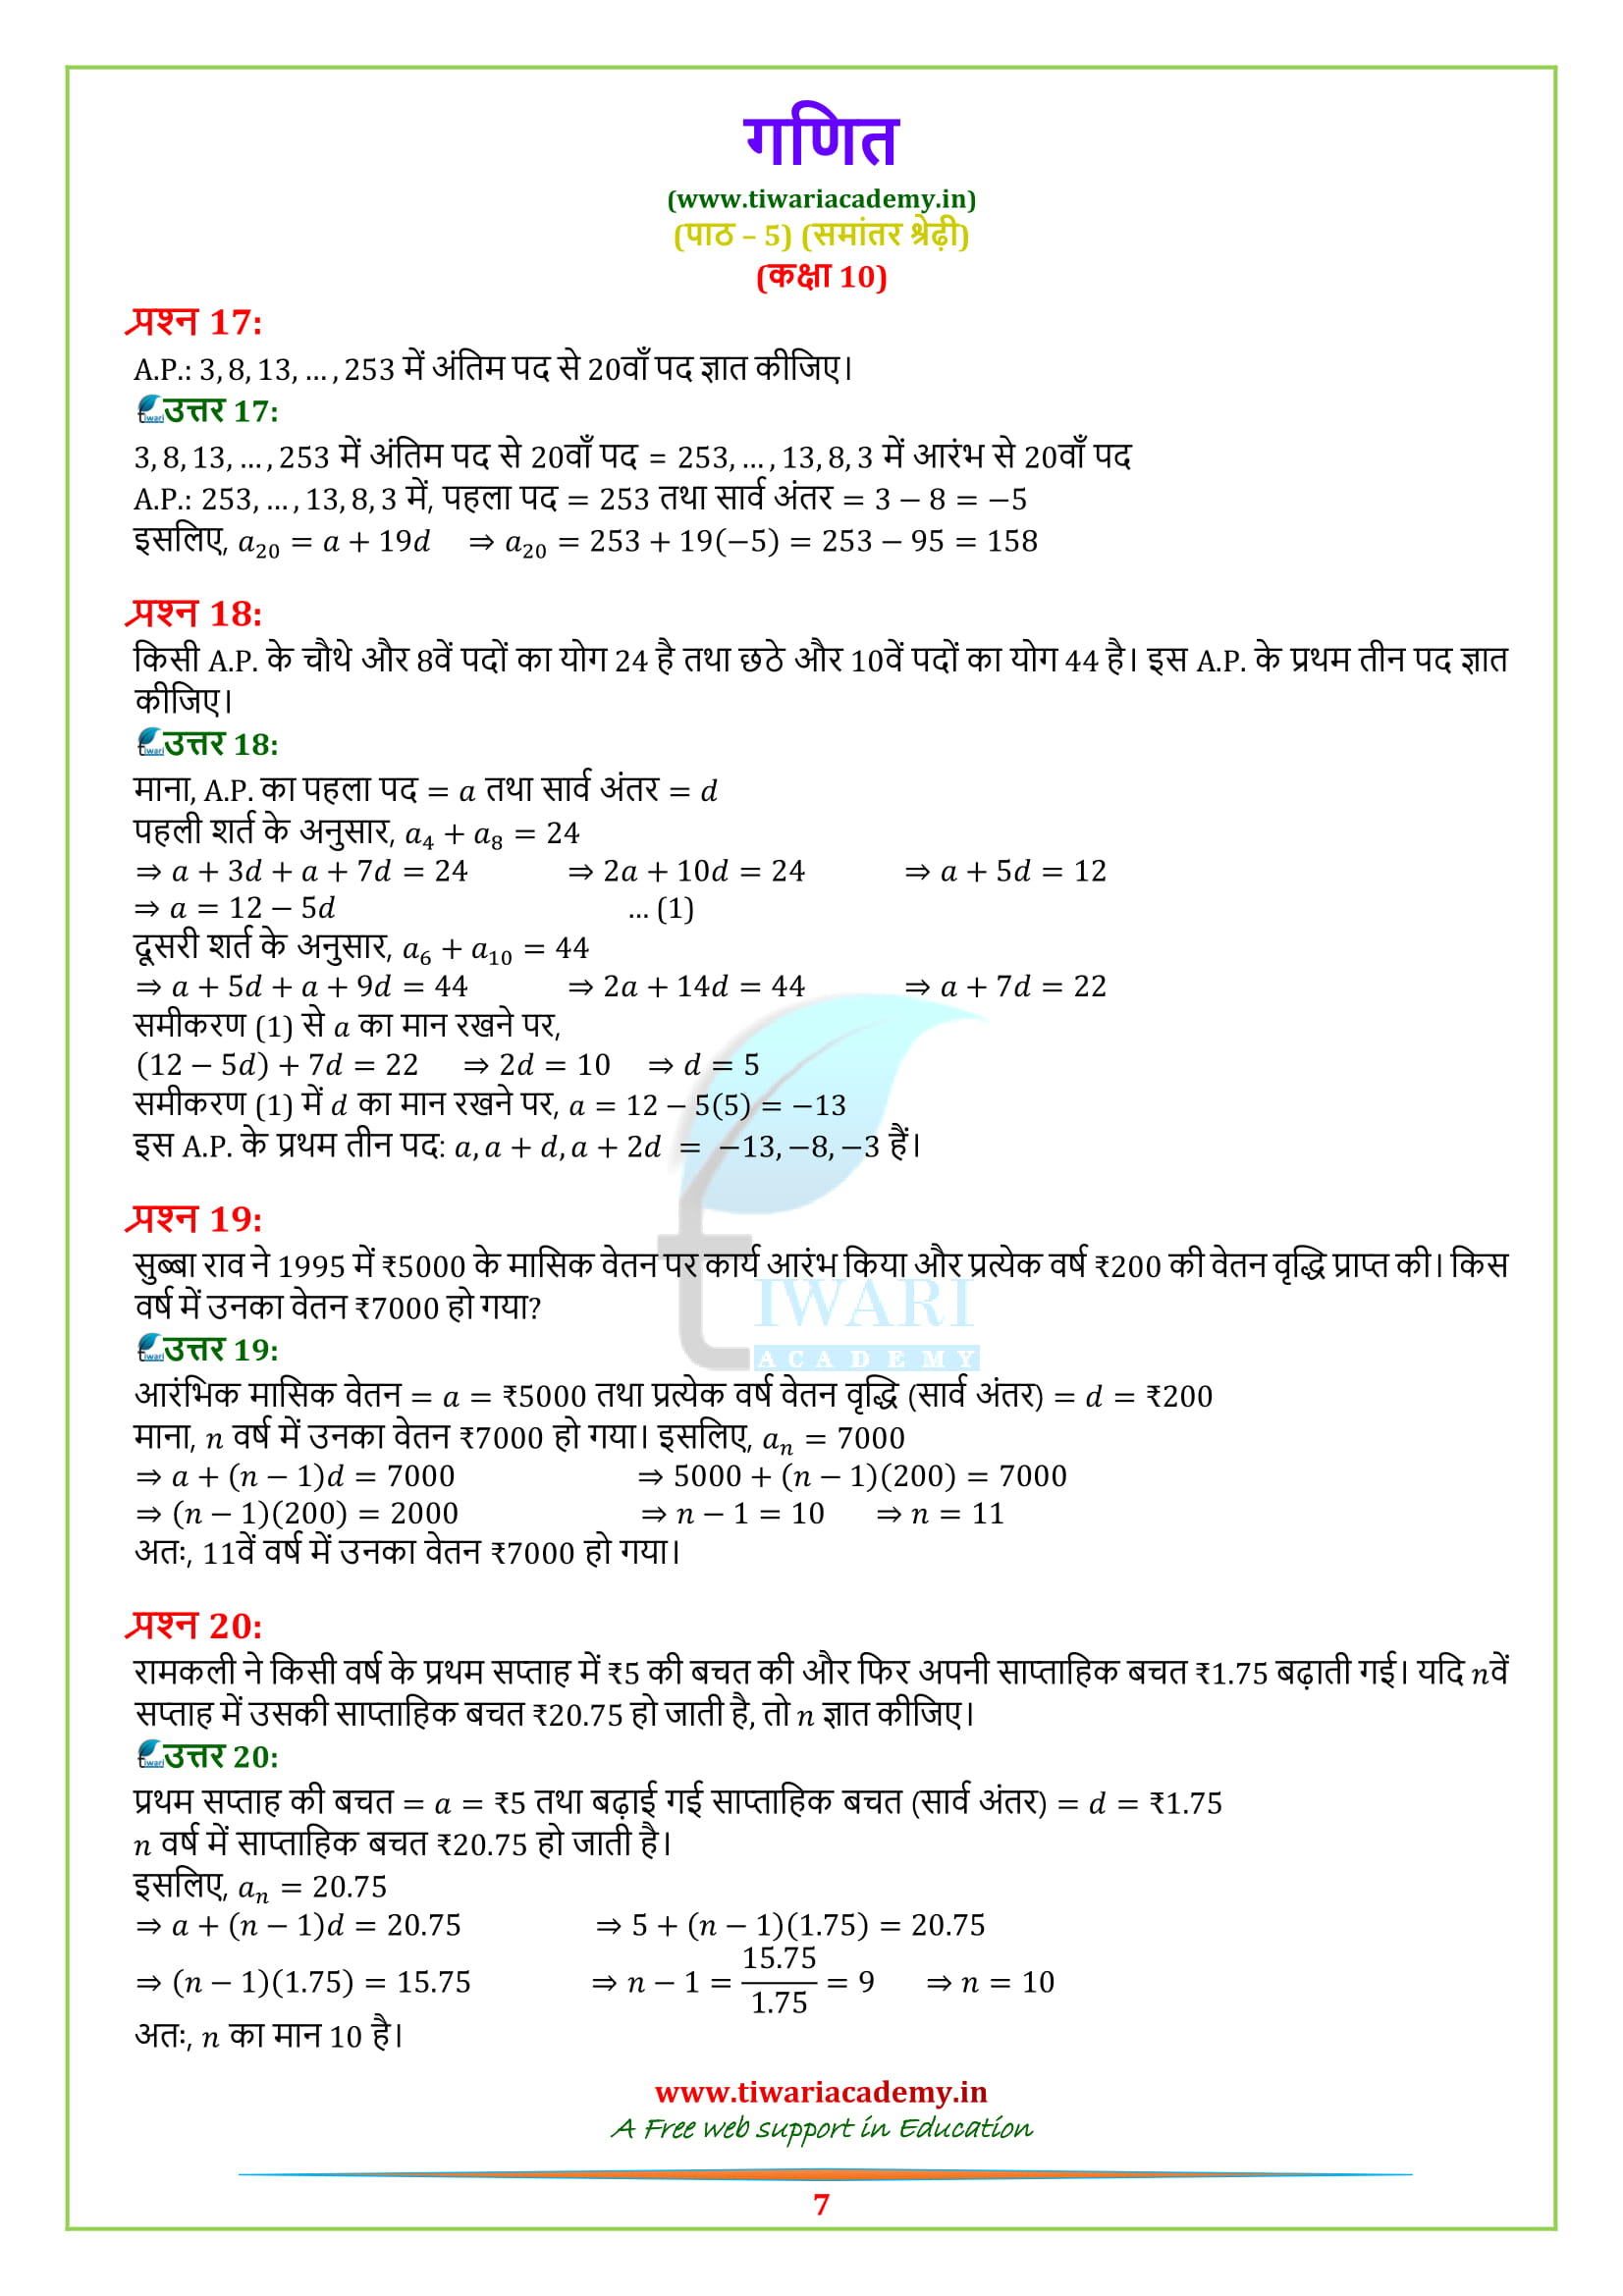 NCERT Solutions for Class 10 Maths exercise 5.2 download in pdf